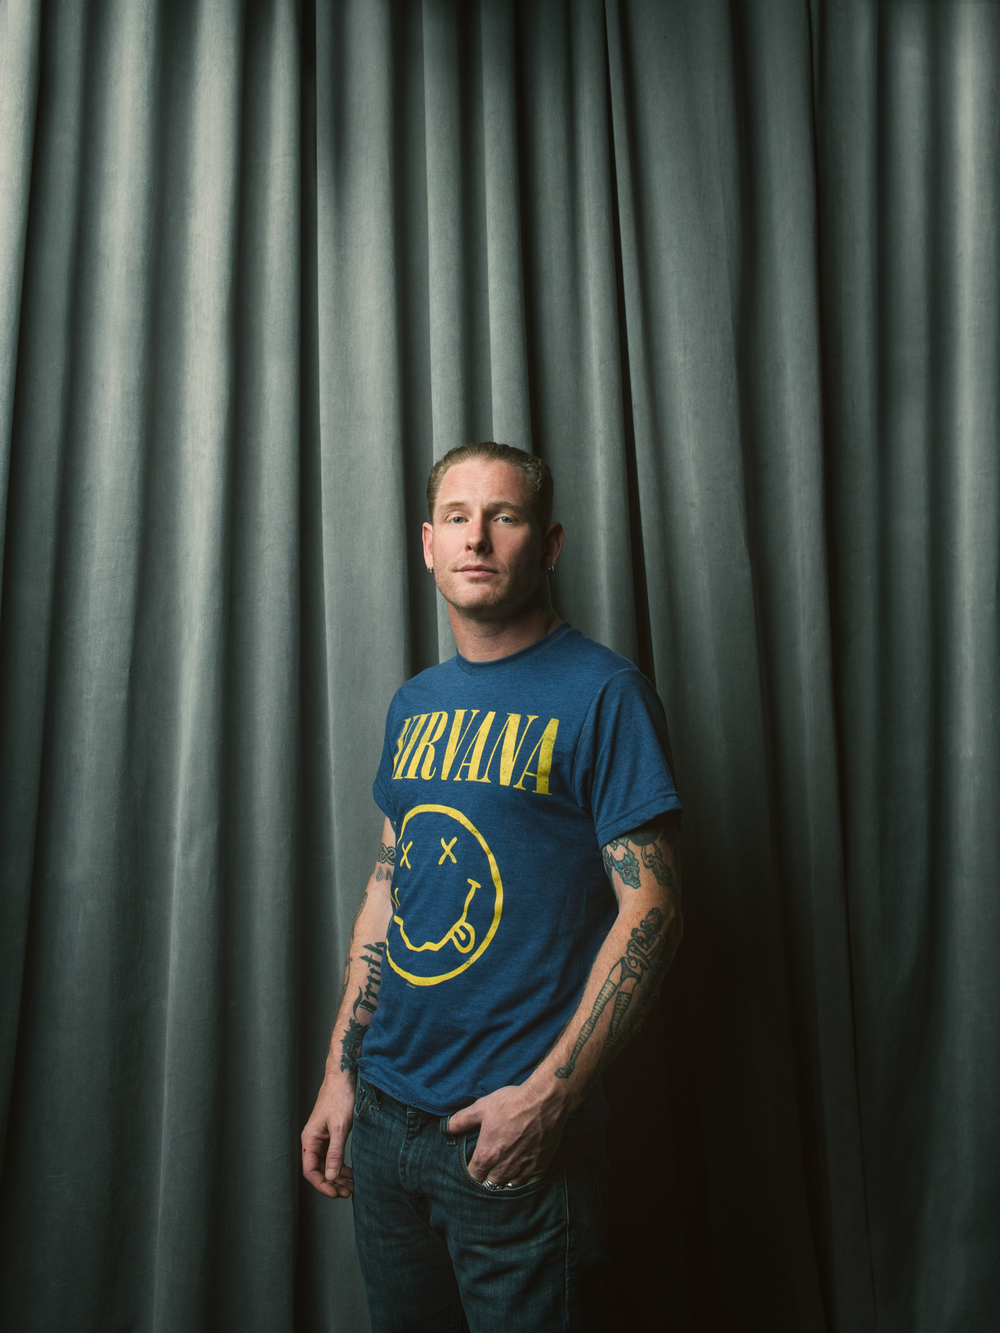 Corey Taylor, singer of Slipknot